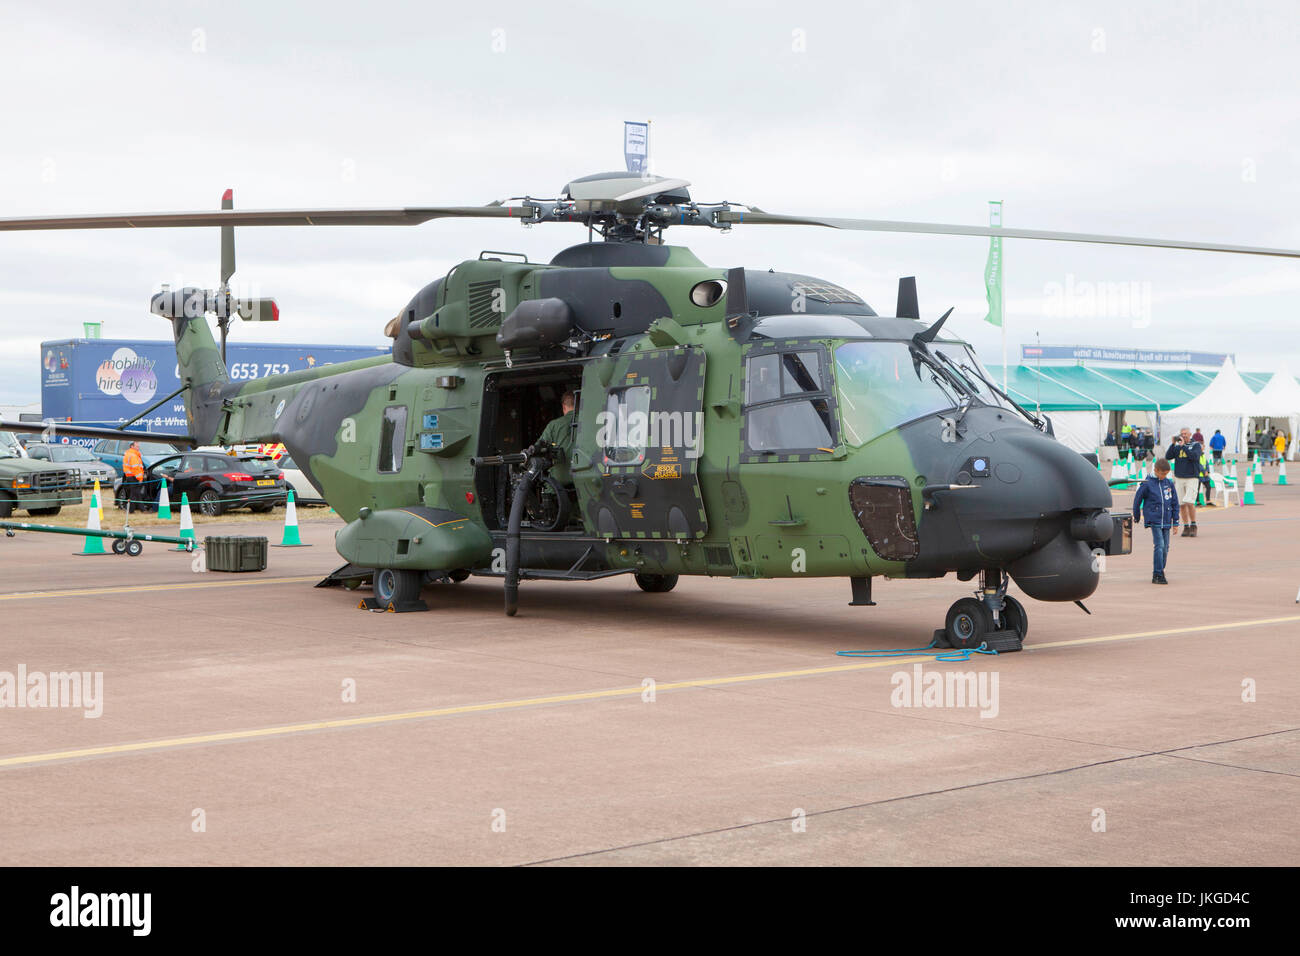 Finnish Army NH Industries NH-90 TTH NH-218 Military Aircraft Military Aircraft at the Royal International Air Tattoo - Stock Image